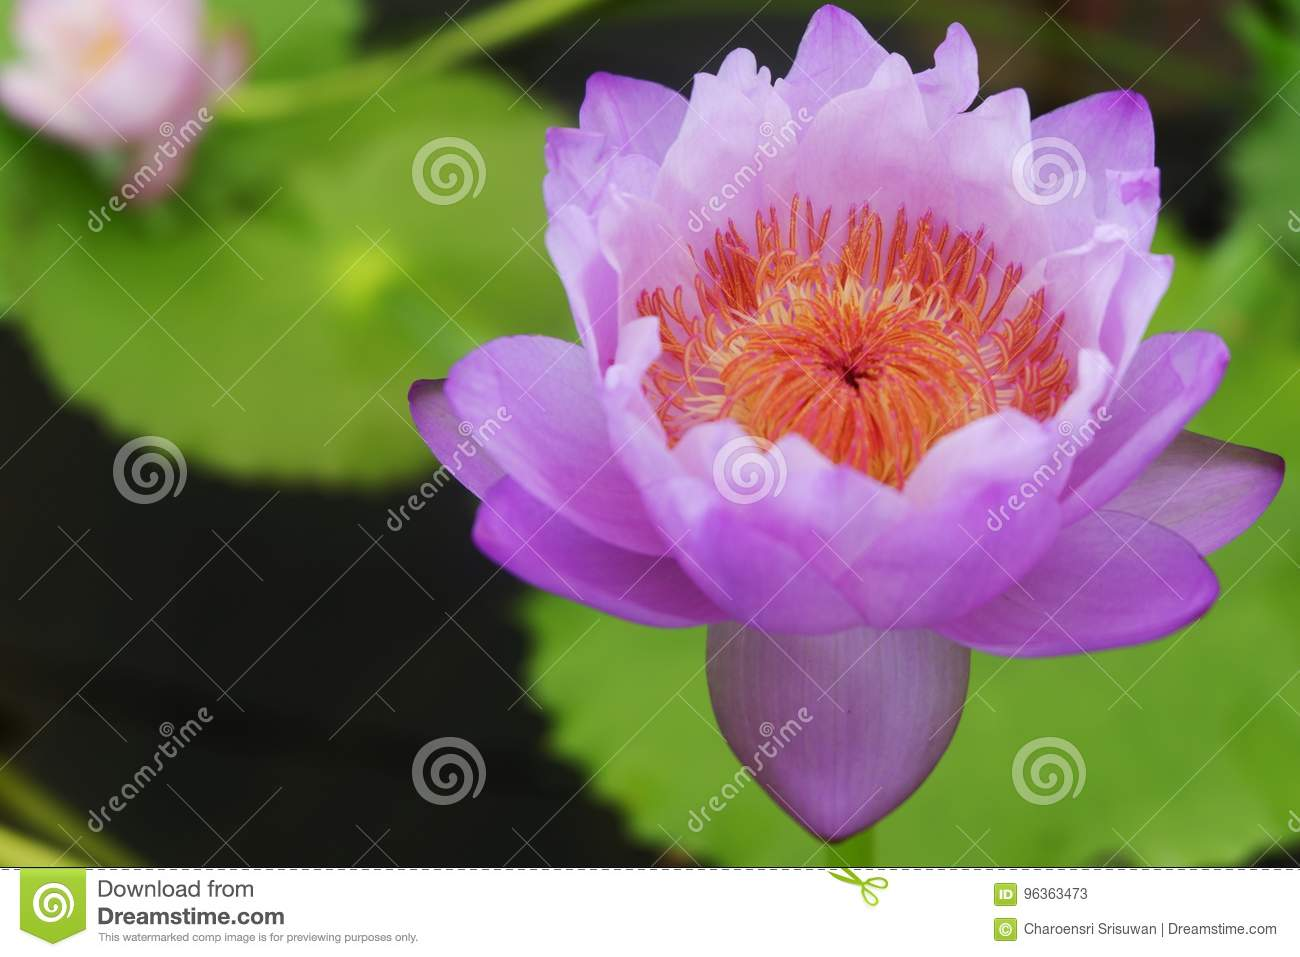 A beautiful spiritual louts flower stock image image of rebirth more passionately colored red purple and blue lotus flower blooms can take on a spiritual meaning of ascension enlightenment or rebirth mightylinksfo